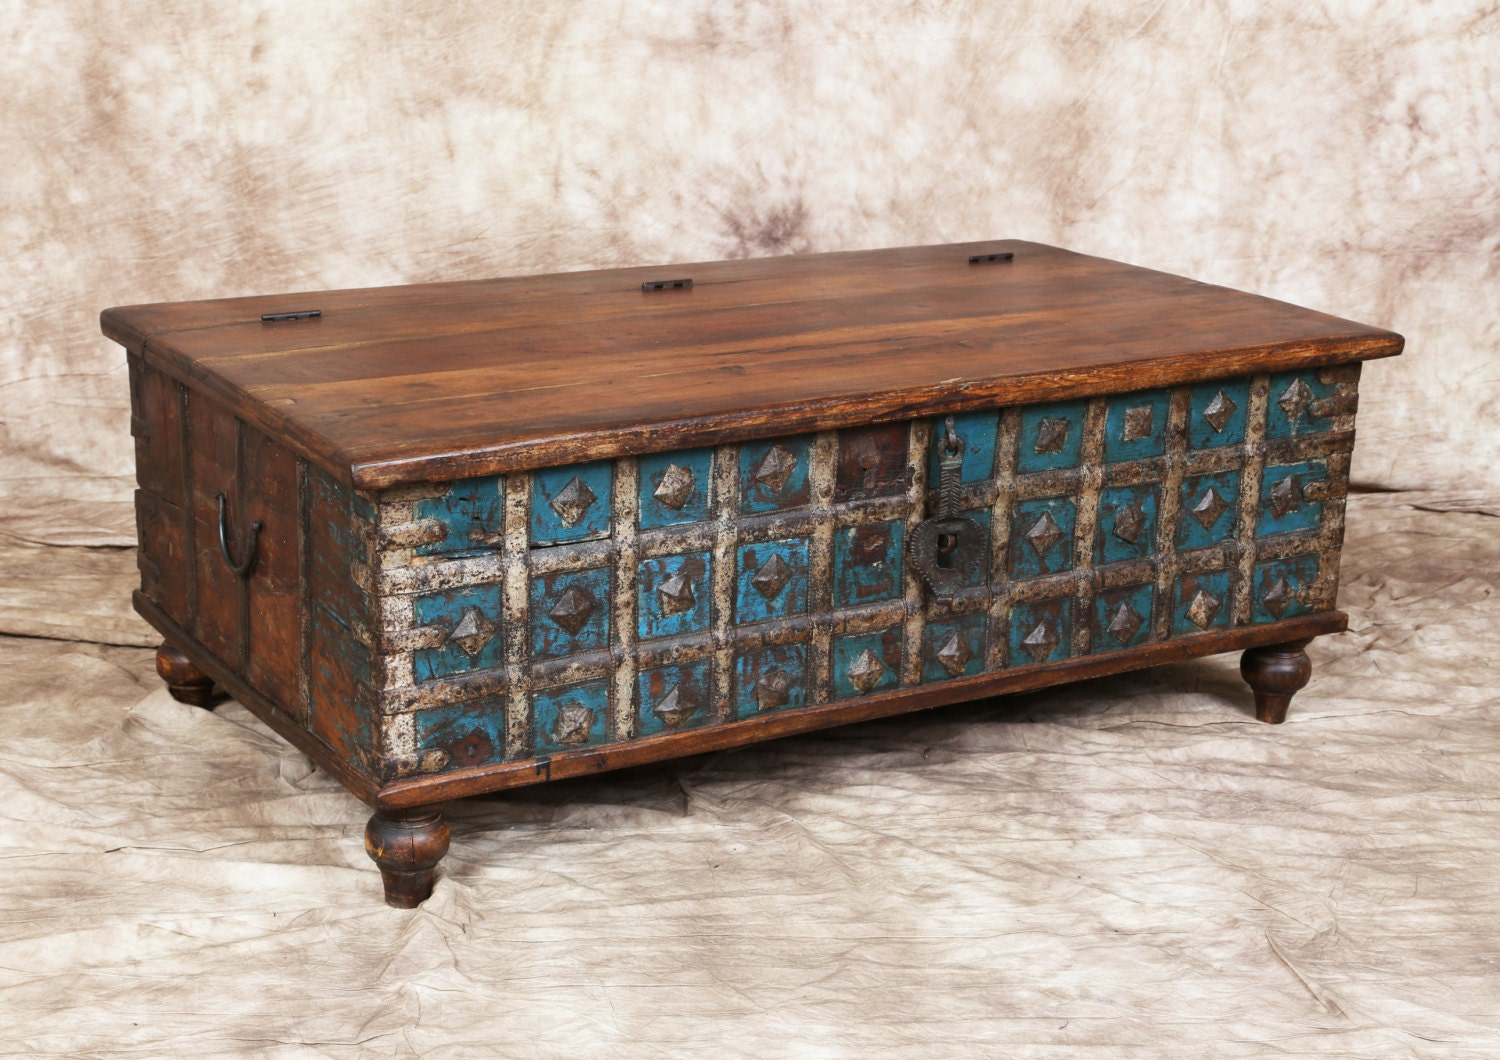 Antique Blue Cream Indian Trunk Coffee Table Metal By Wanderloot